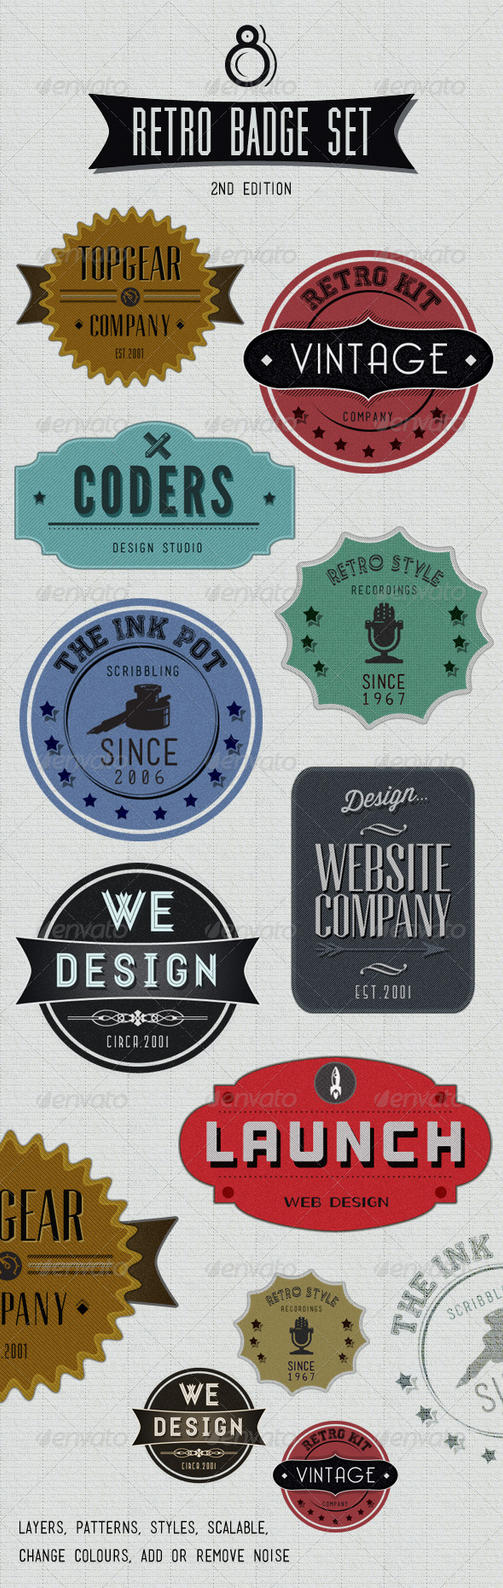 Retro Badges - Faded Vintage Labels by gojol23